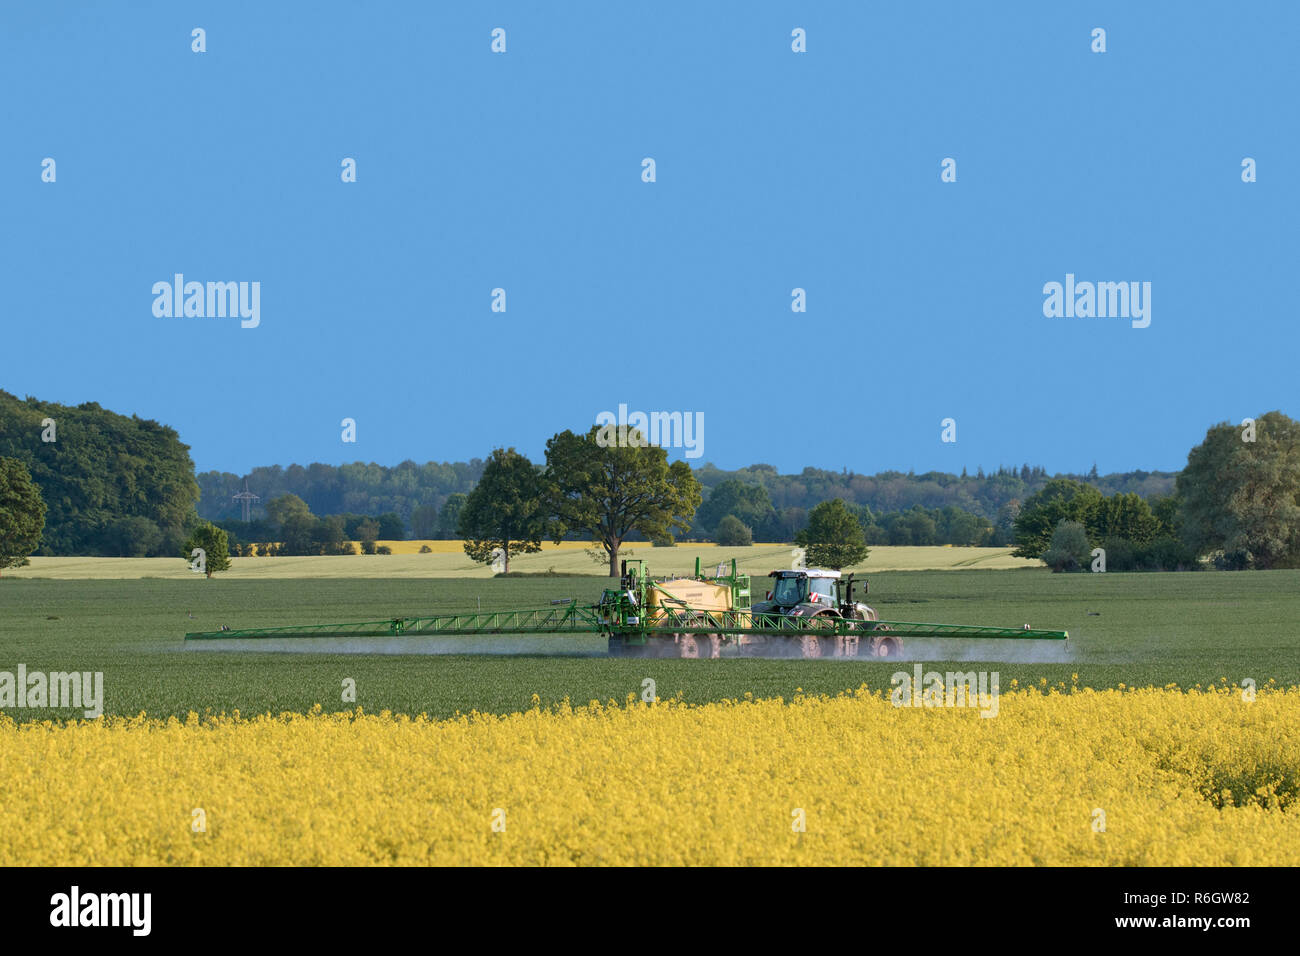 Farmer in tractor spraying herbicides / insecticides / pesticides over field with trailed sprayer in spring - Stock Image